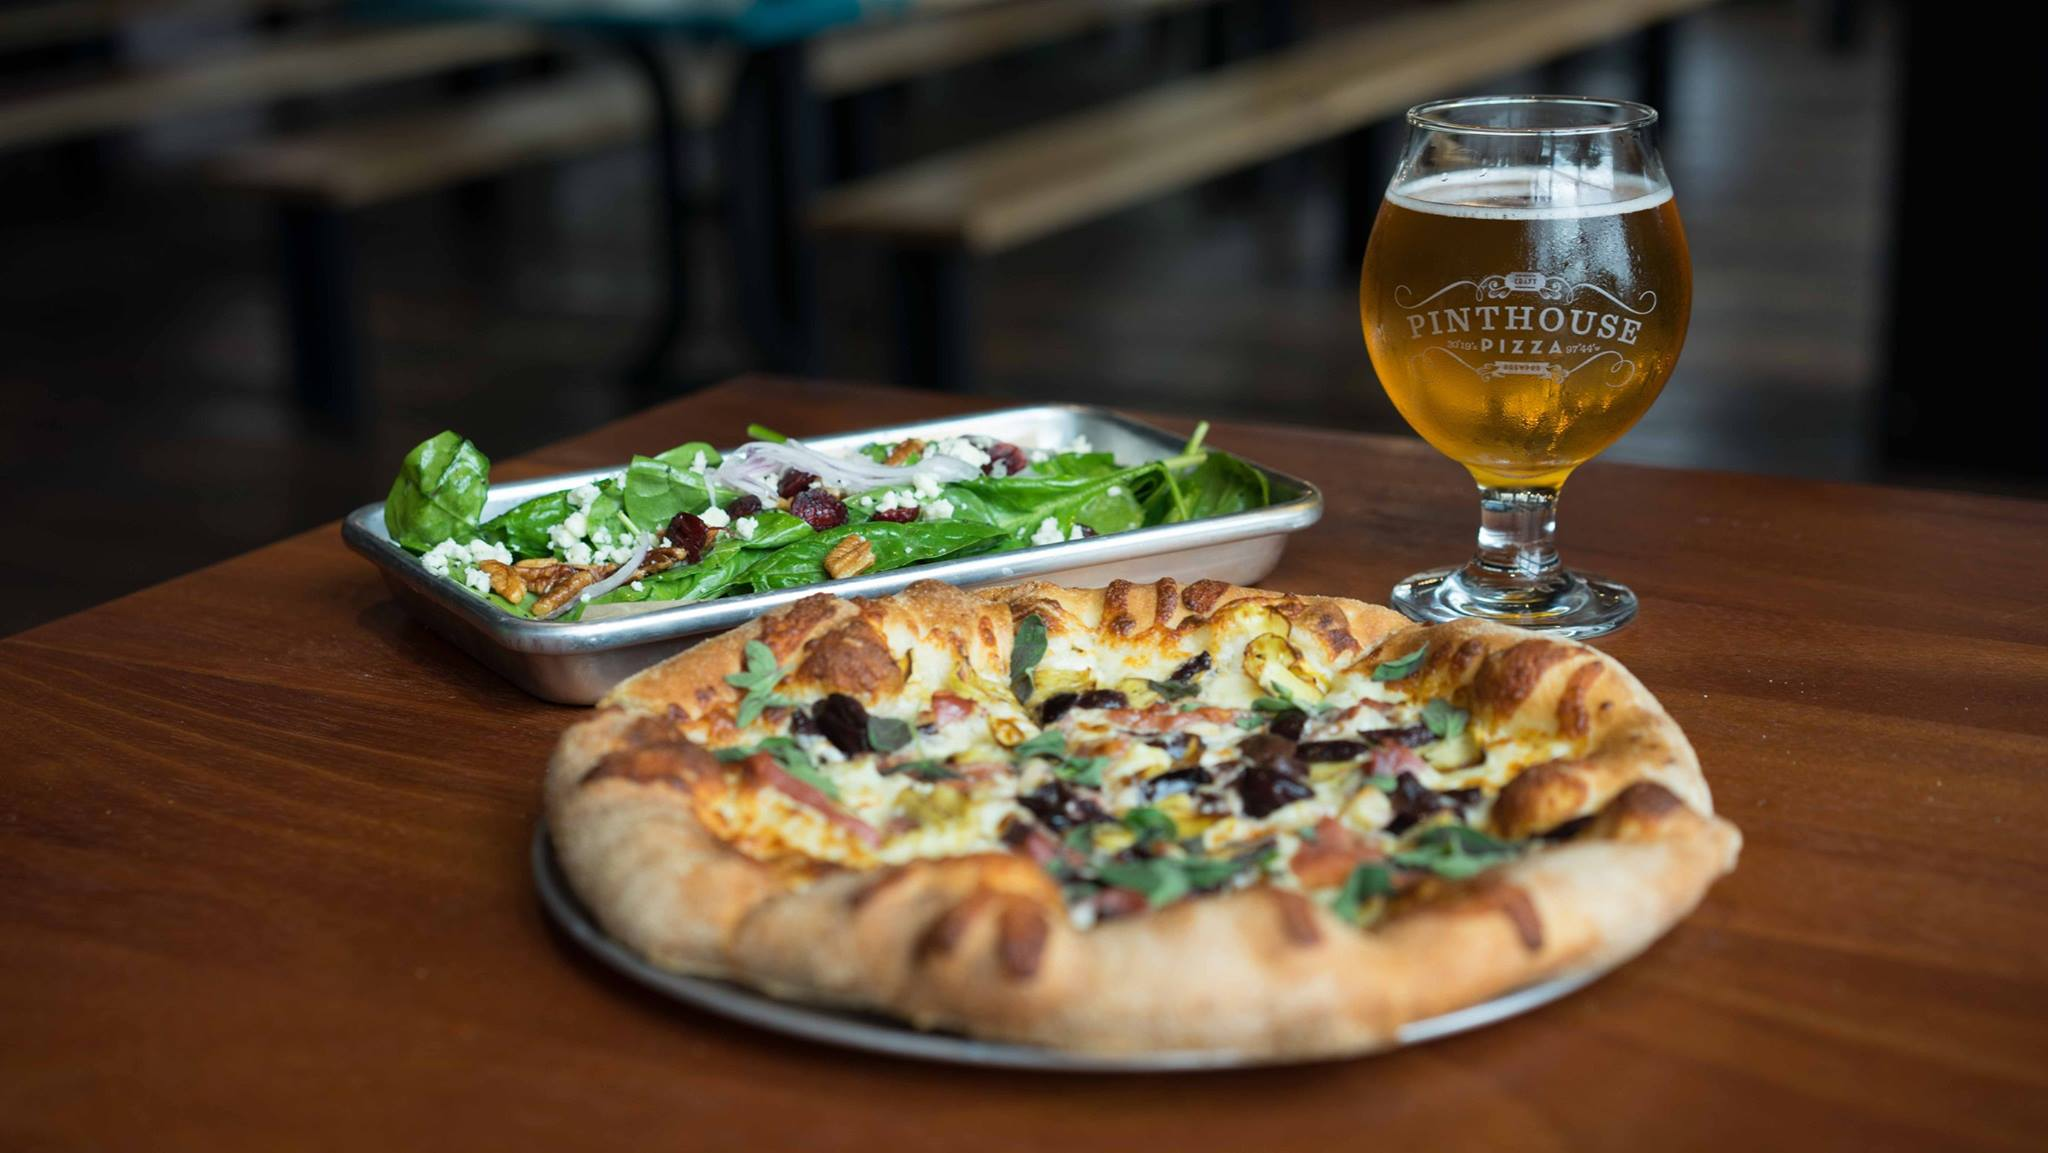 Pinthouse Pizza's Empire Continues to Grow Into Southeast Austin